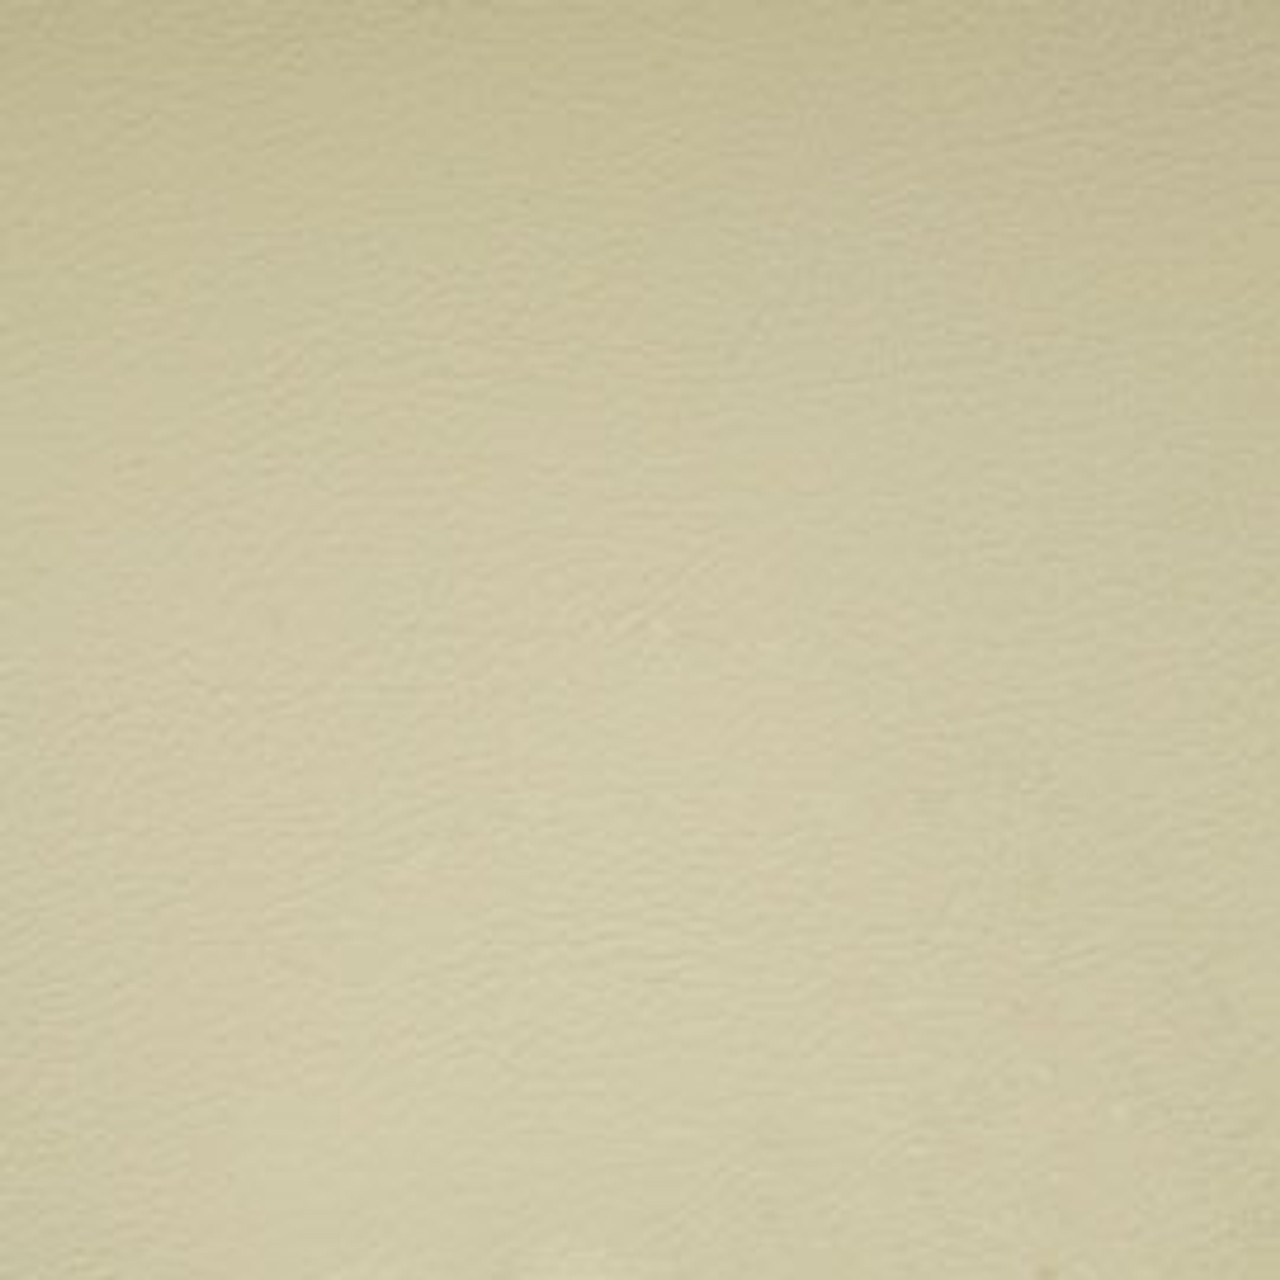 "G-Grain #7220 Light Parchment Vinyl 54"" - Sold by the CONTINUOUS YARD!"